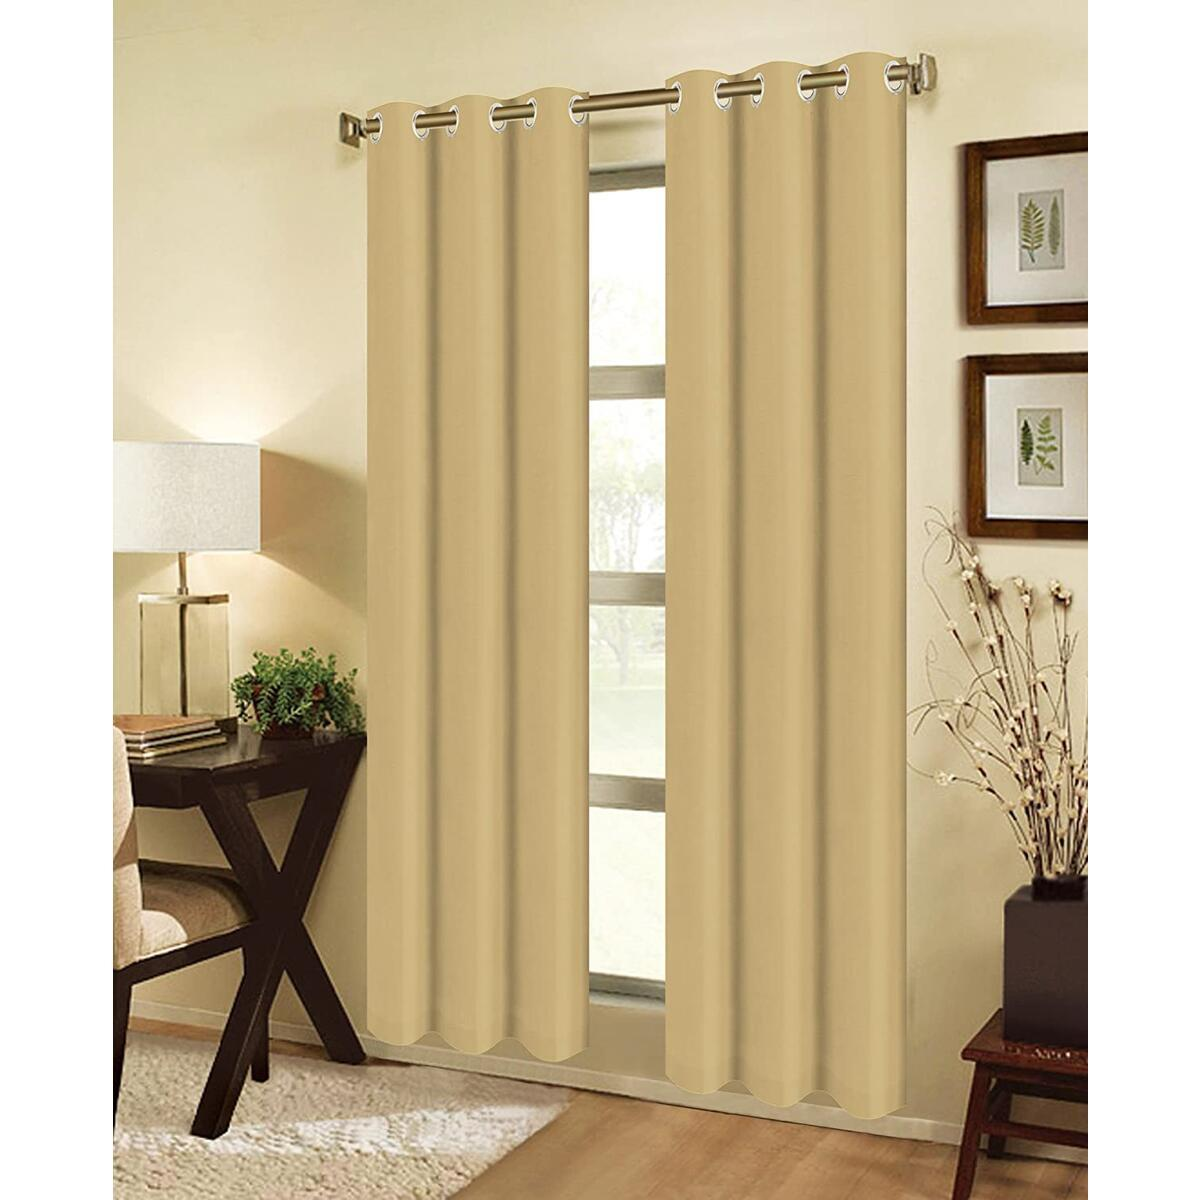 Window Treatment Curtain Set Light Reducing Curtains for Living Room, Curtain Panels for Patio Door Solid Blackout Drapes Many Colors & Sizes (Gold, 2PC 37 X 84 (74 X 84 Total))